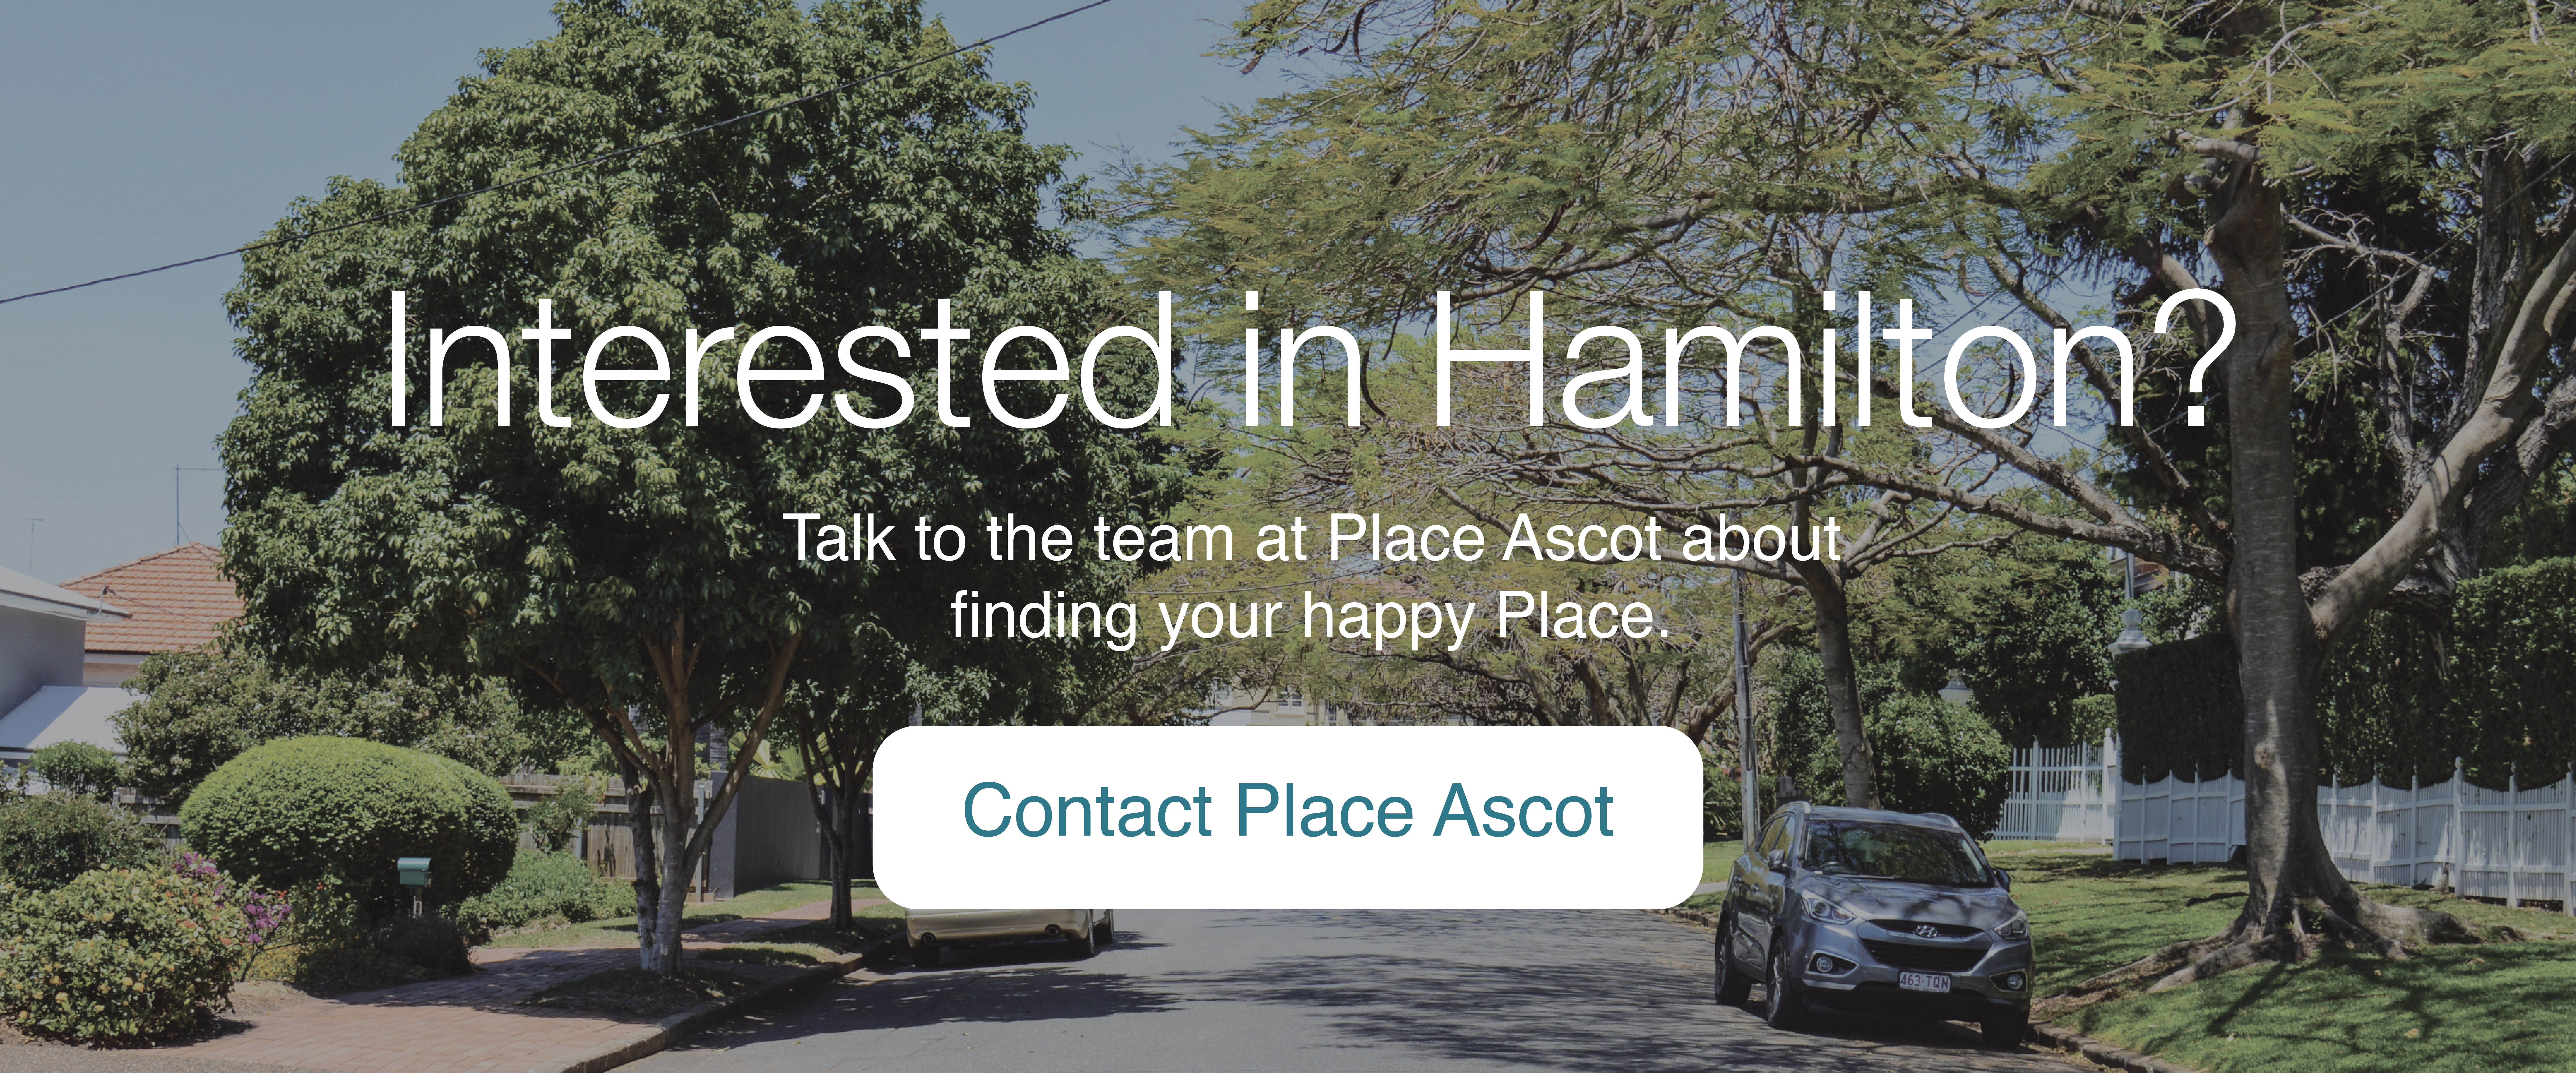 place_ascot